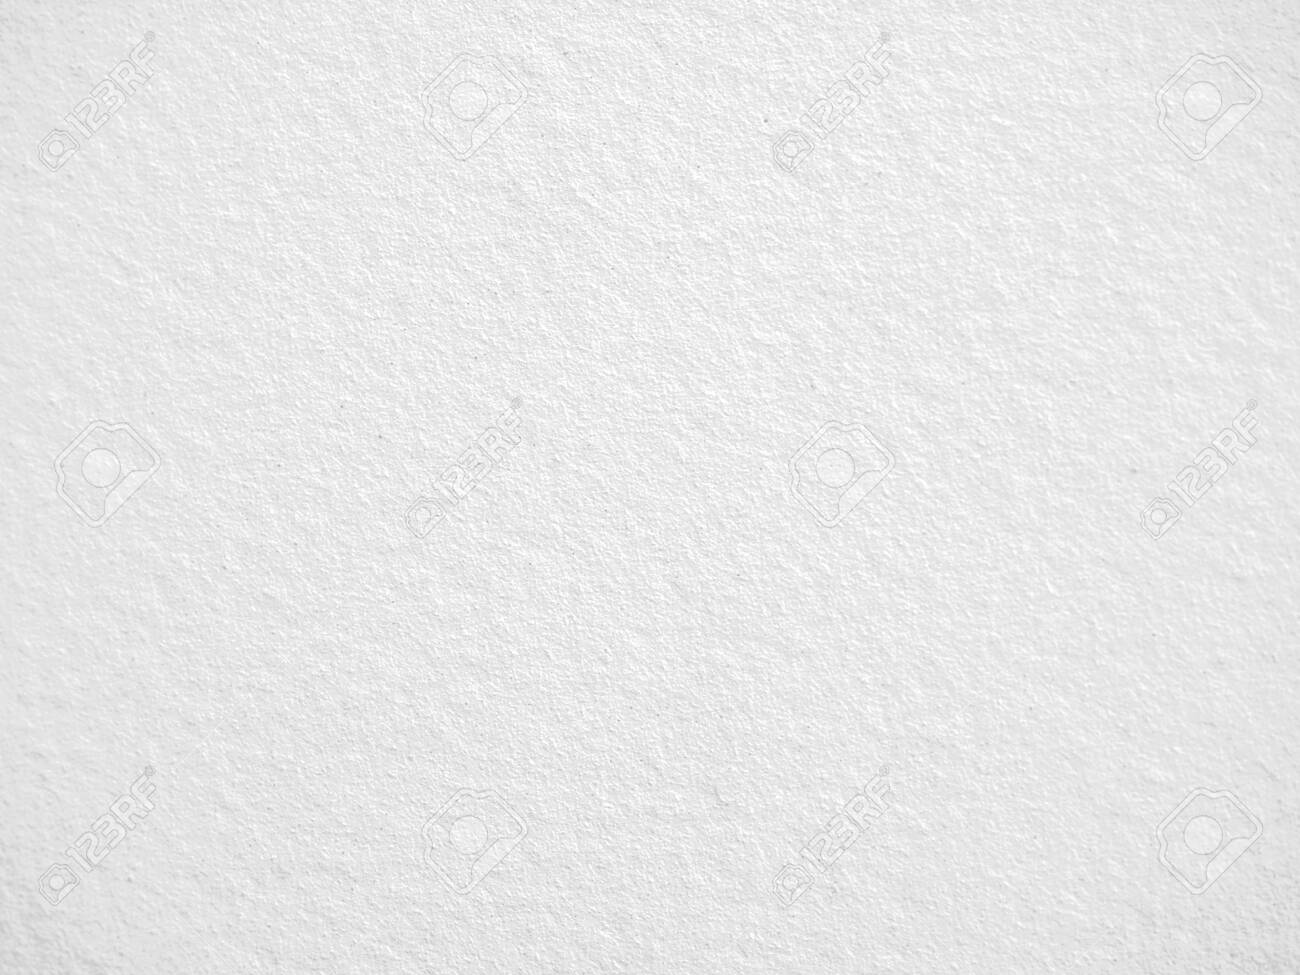 white paper texture background close up - 126110270